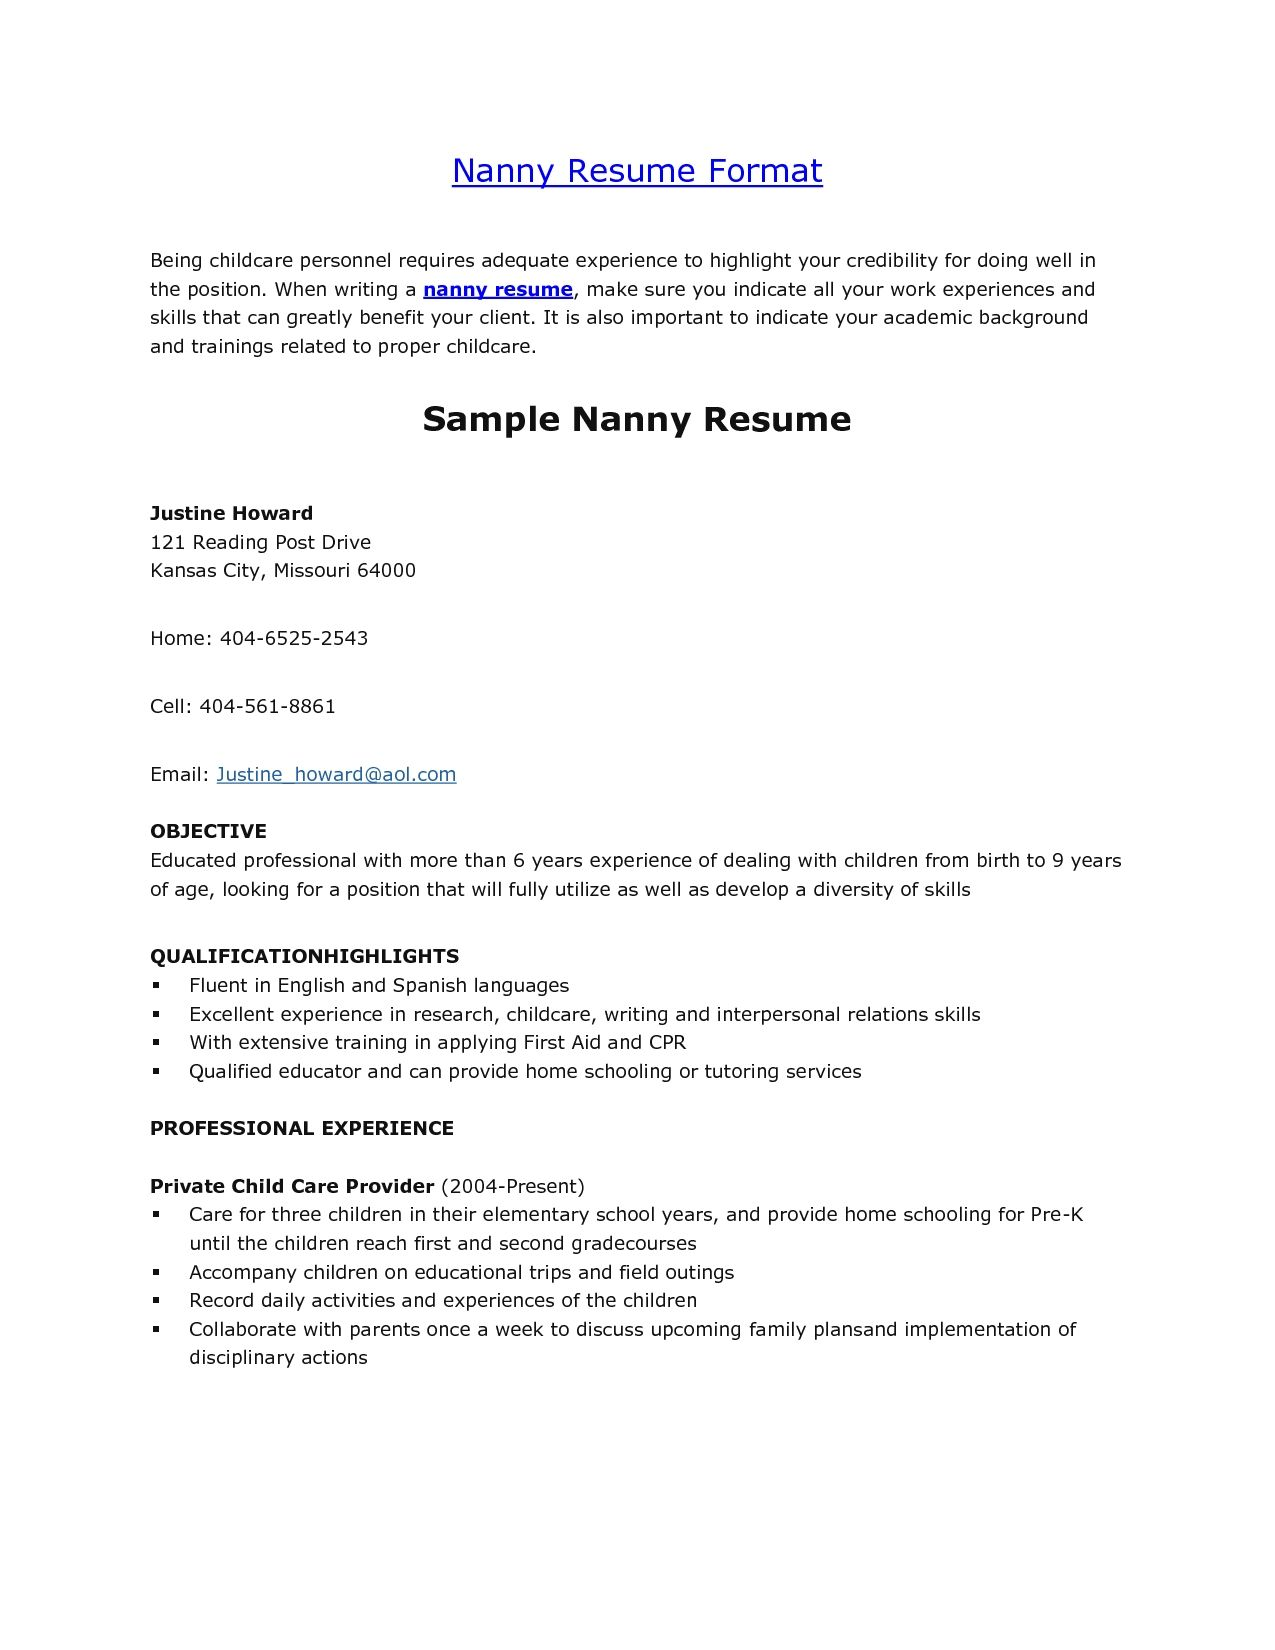 explore nanny jobs resume objective and more